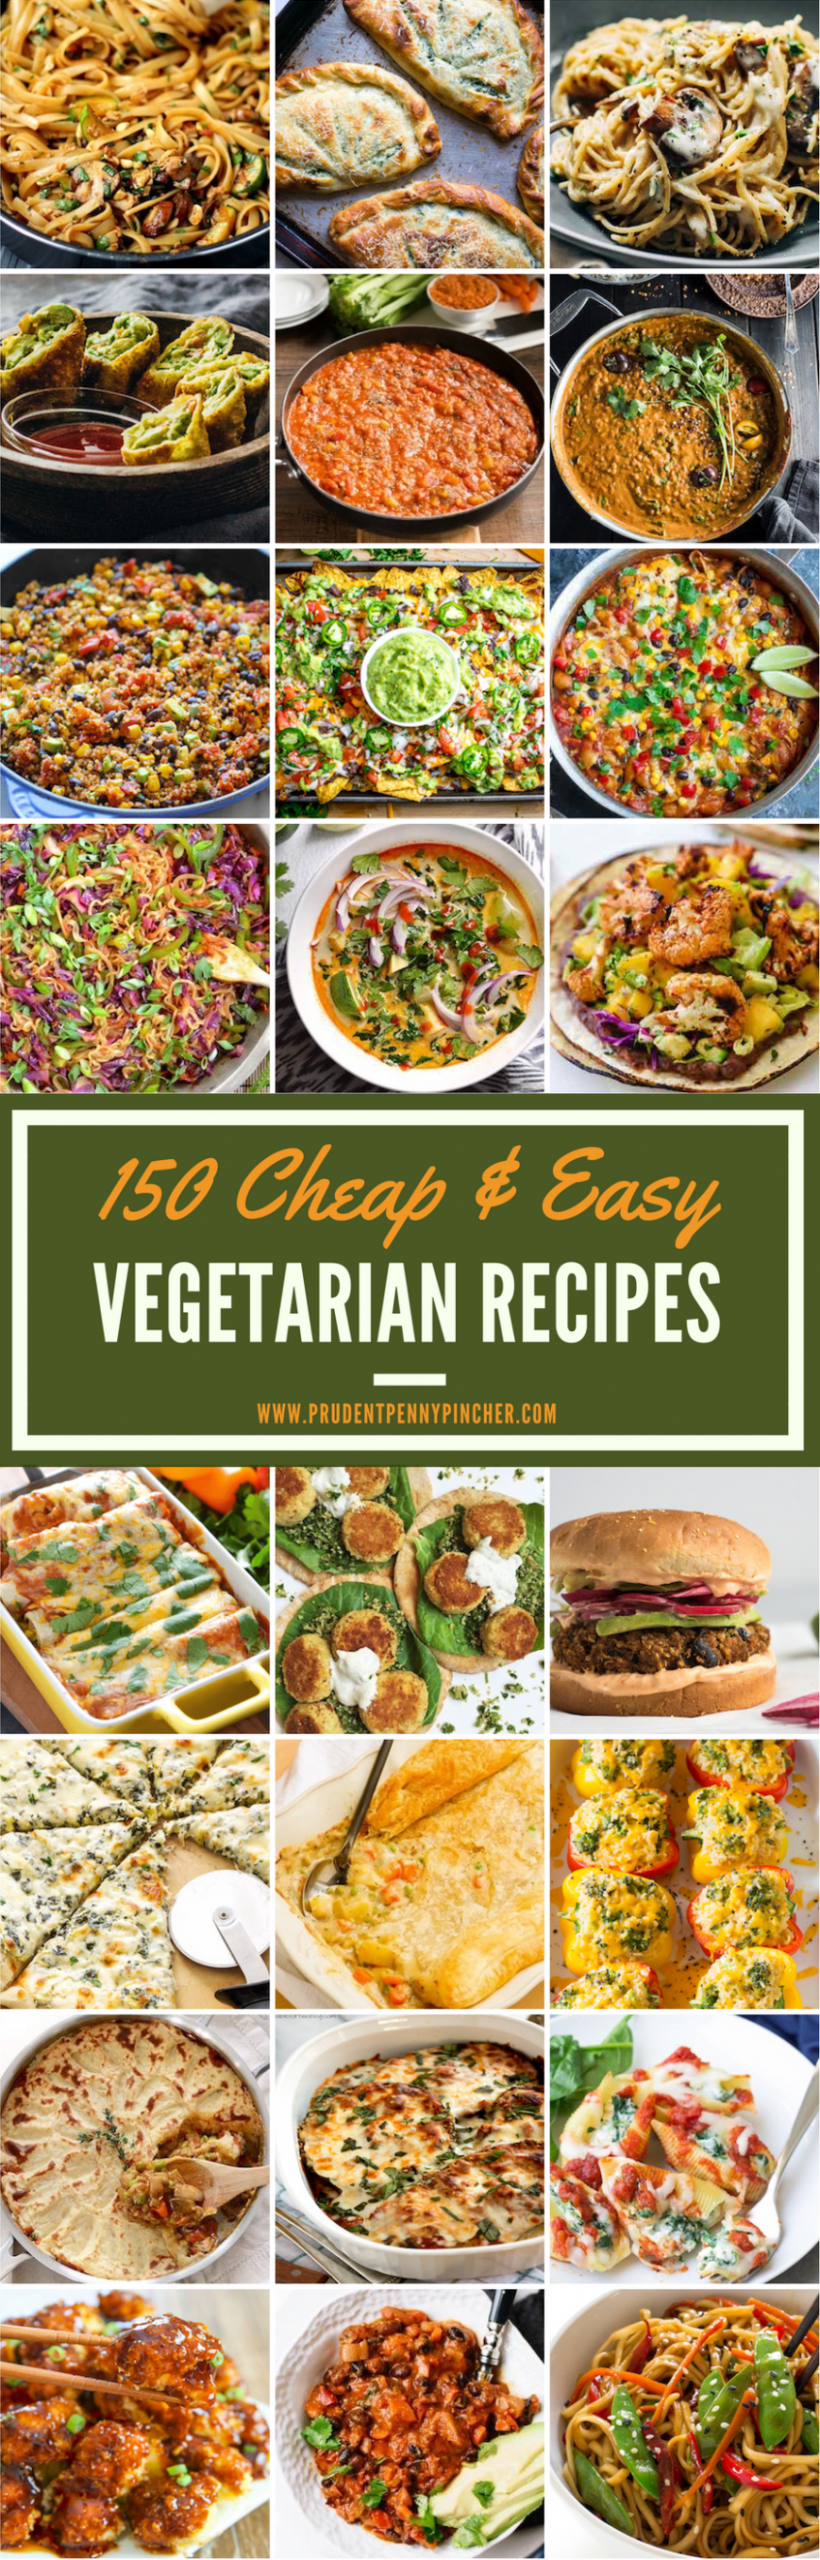 10 Cheap And Easy Vegetarian Recipes - Prudent Penny Pincher - Cheap Easy Kid Friendly Vegetarian Recipes